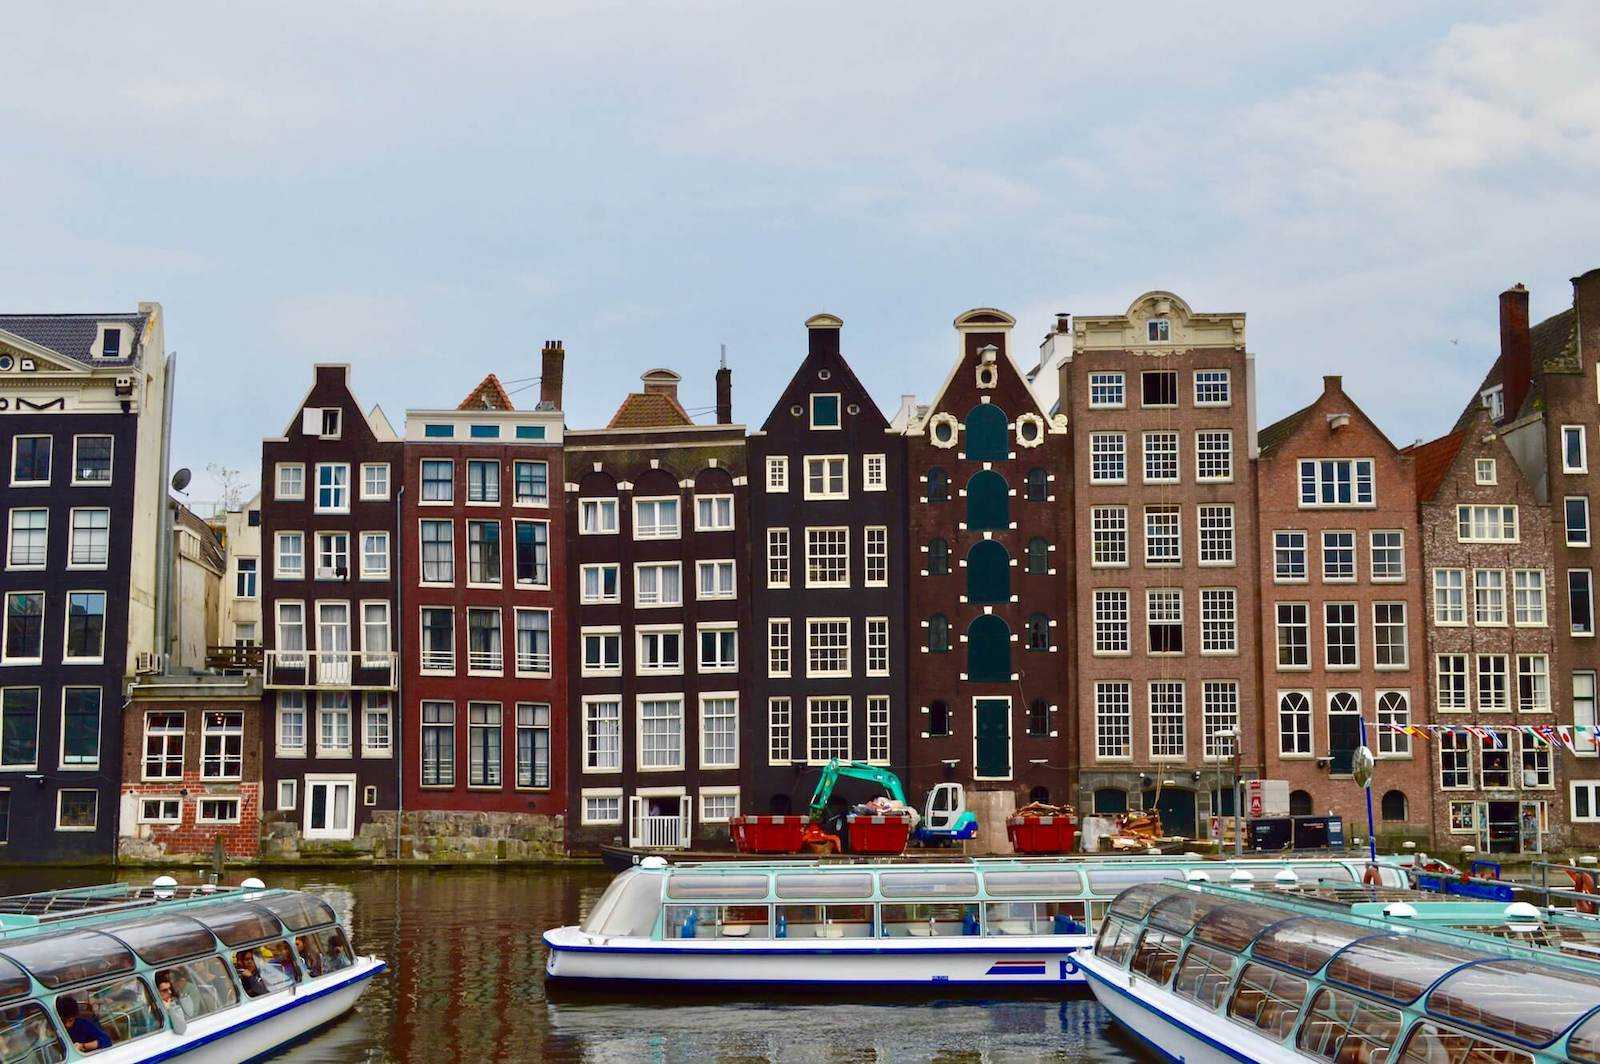 Perch le case di amsterdam sono storte for Case amsterdam economiche